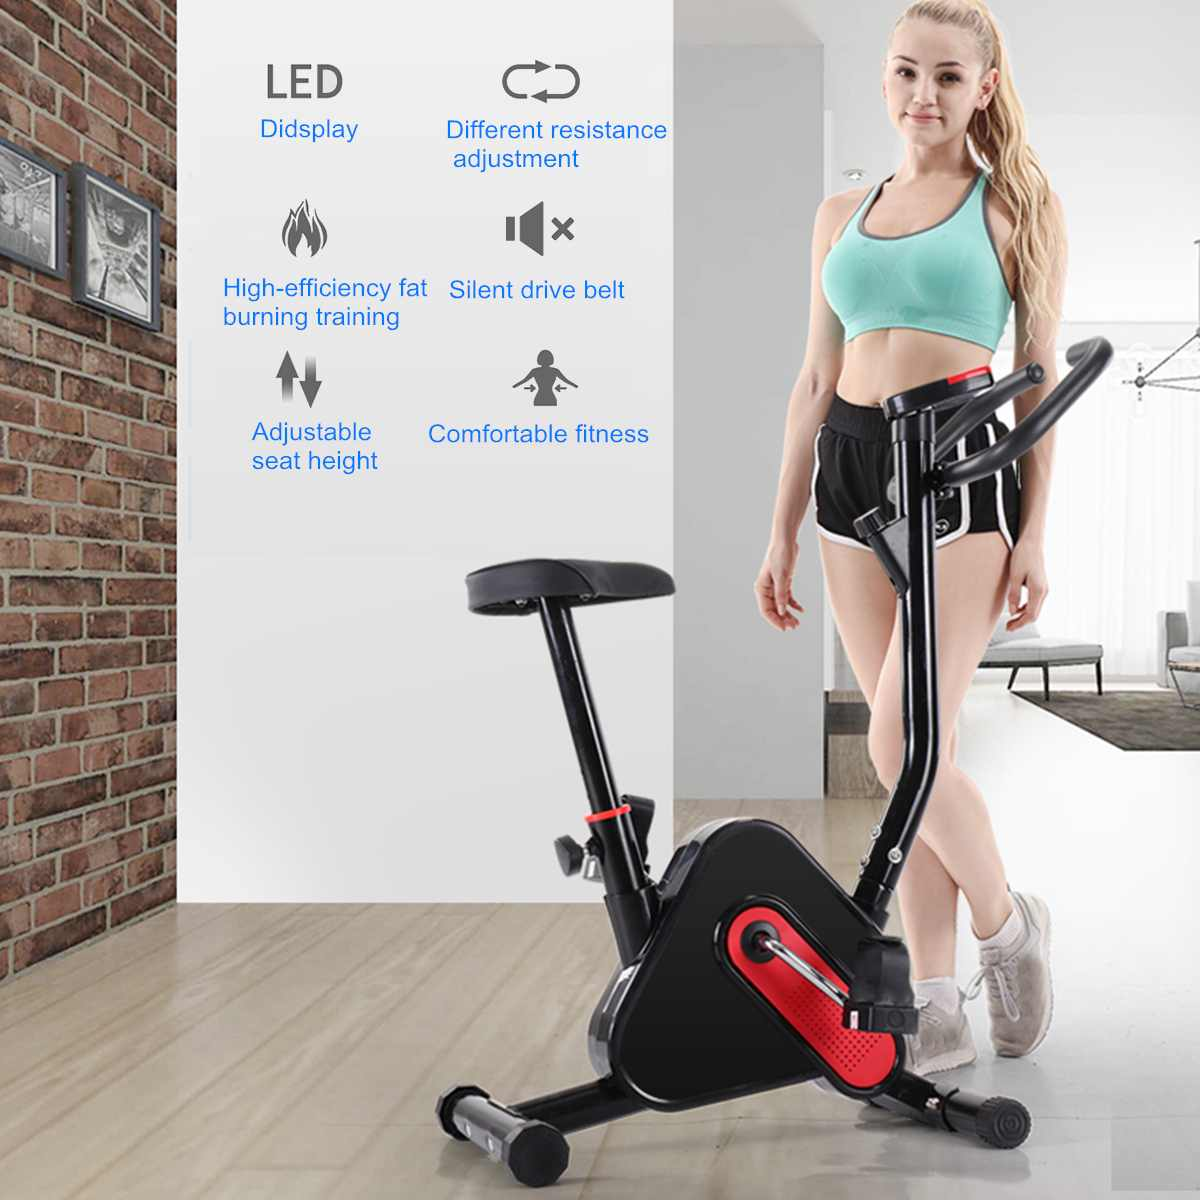 Indoor Cycle Exercise Stationary Bike With LCD Monitor Cardio Fitness Gym Cycling Machine Workout Training 265LB Max Weight